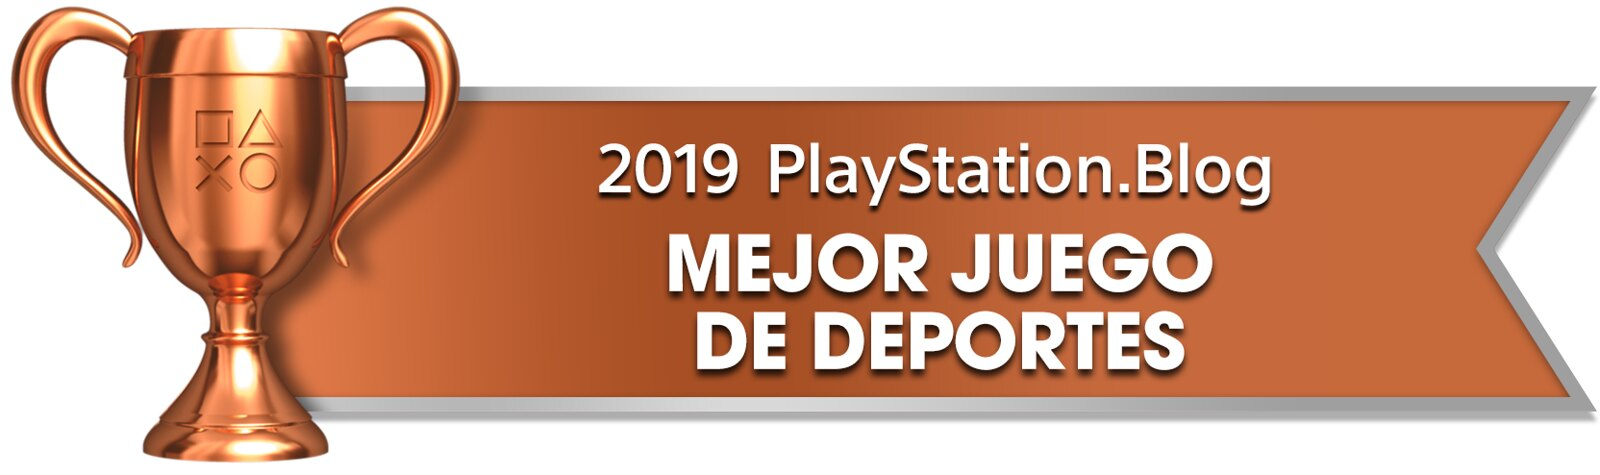 PS Blog Game of the Year 2019 - Best Sports Game - 4 - Bronze